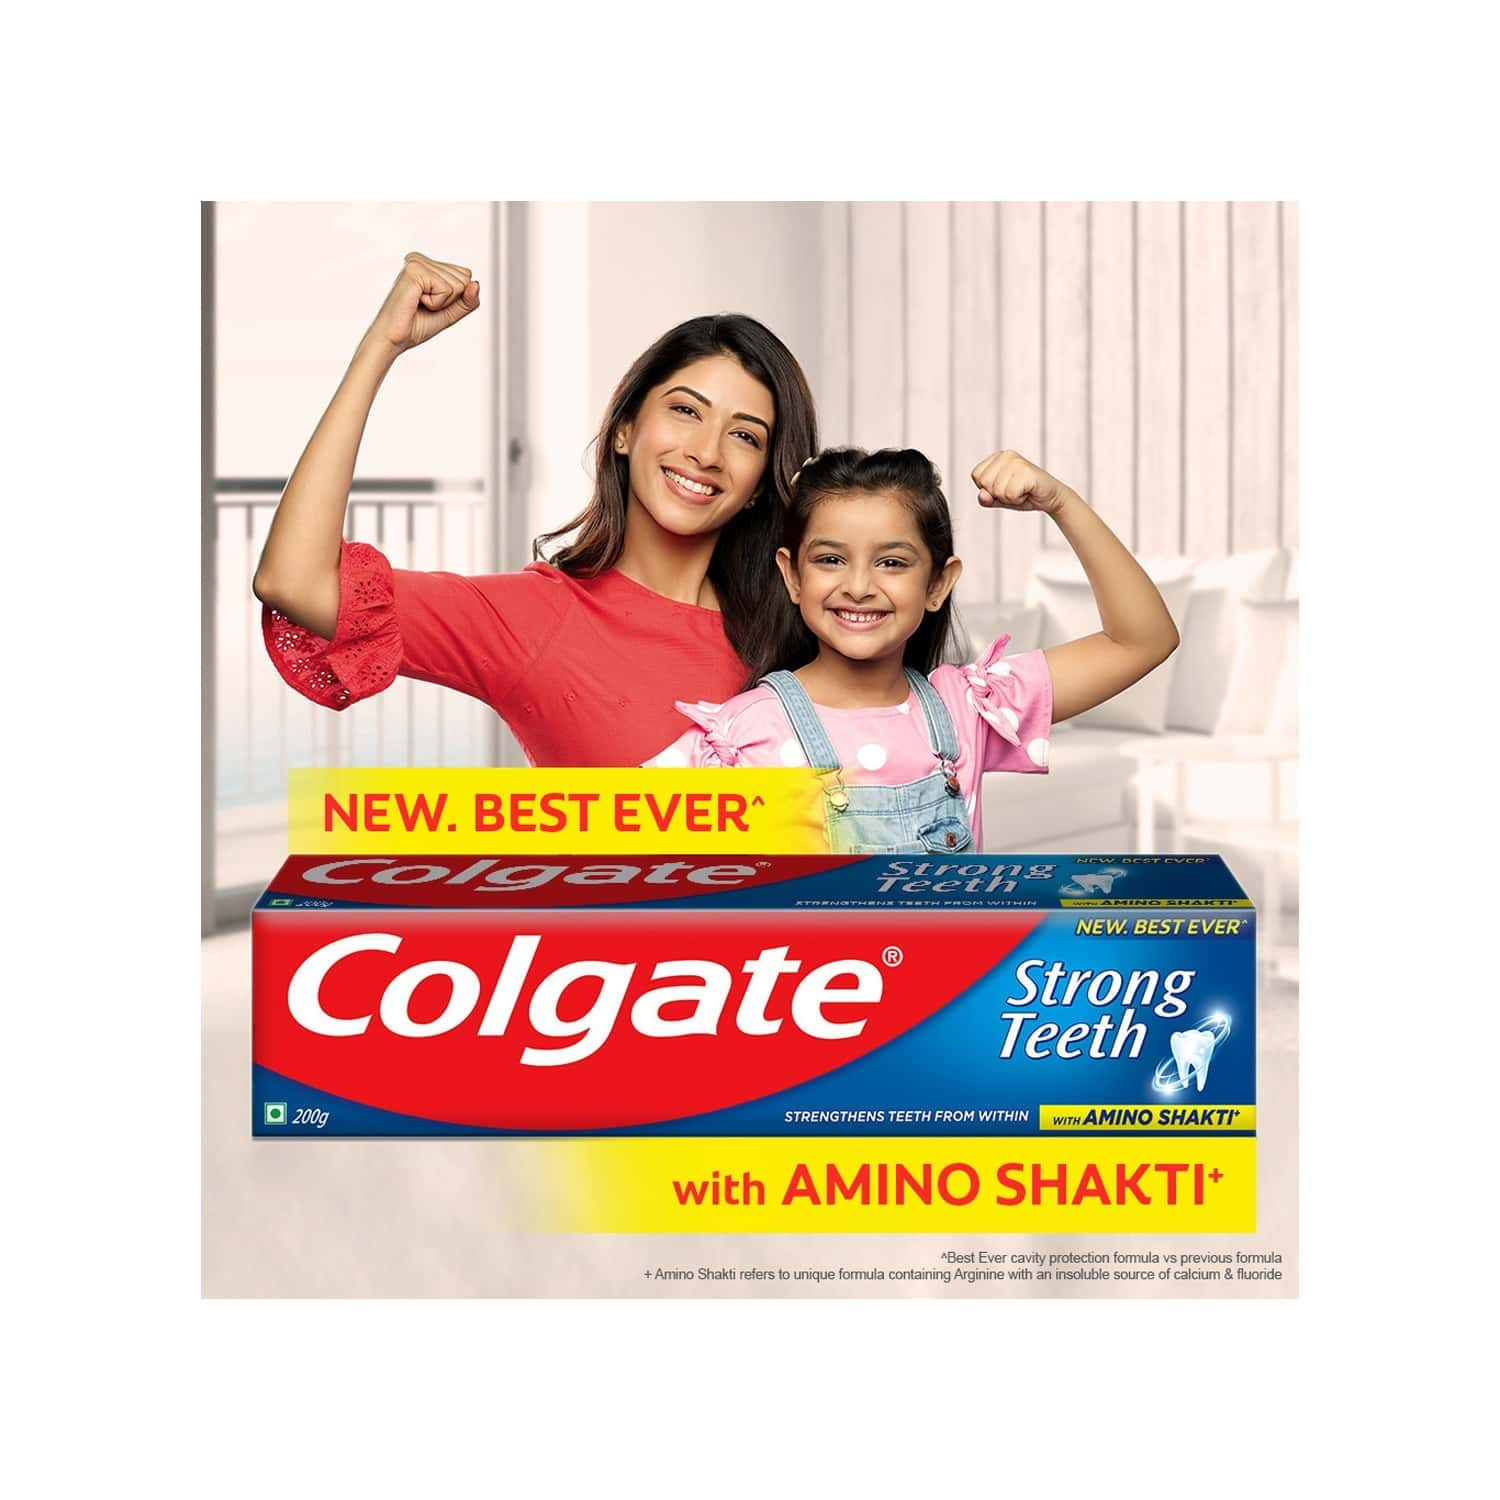 Colgate Strong Teeth : India's No.1 Toothpaste | Anticavity Toothpaste With Amino Shakti Formula 4x200g - 800g